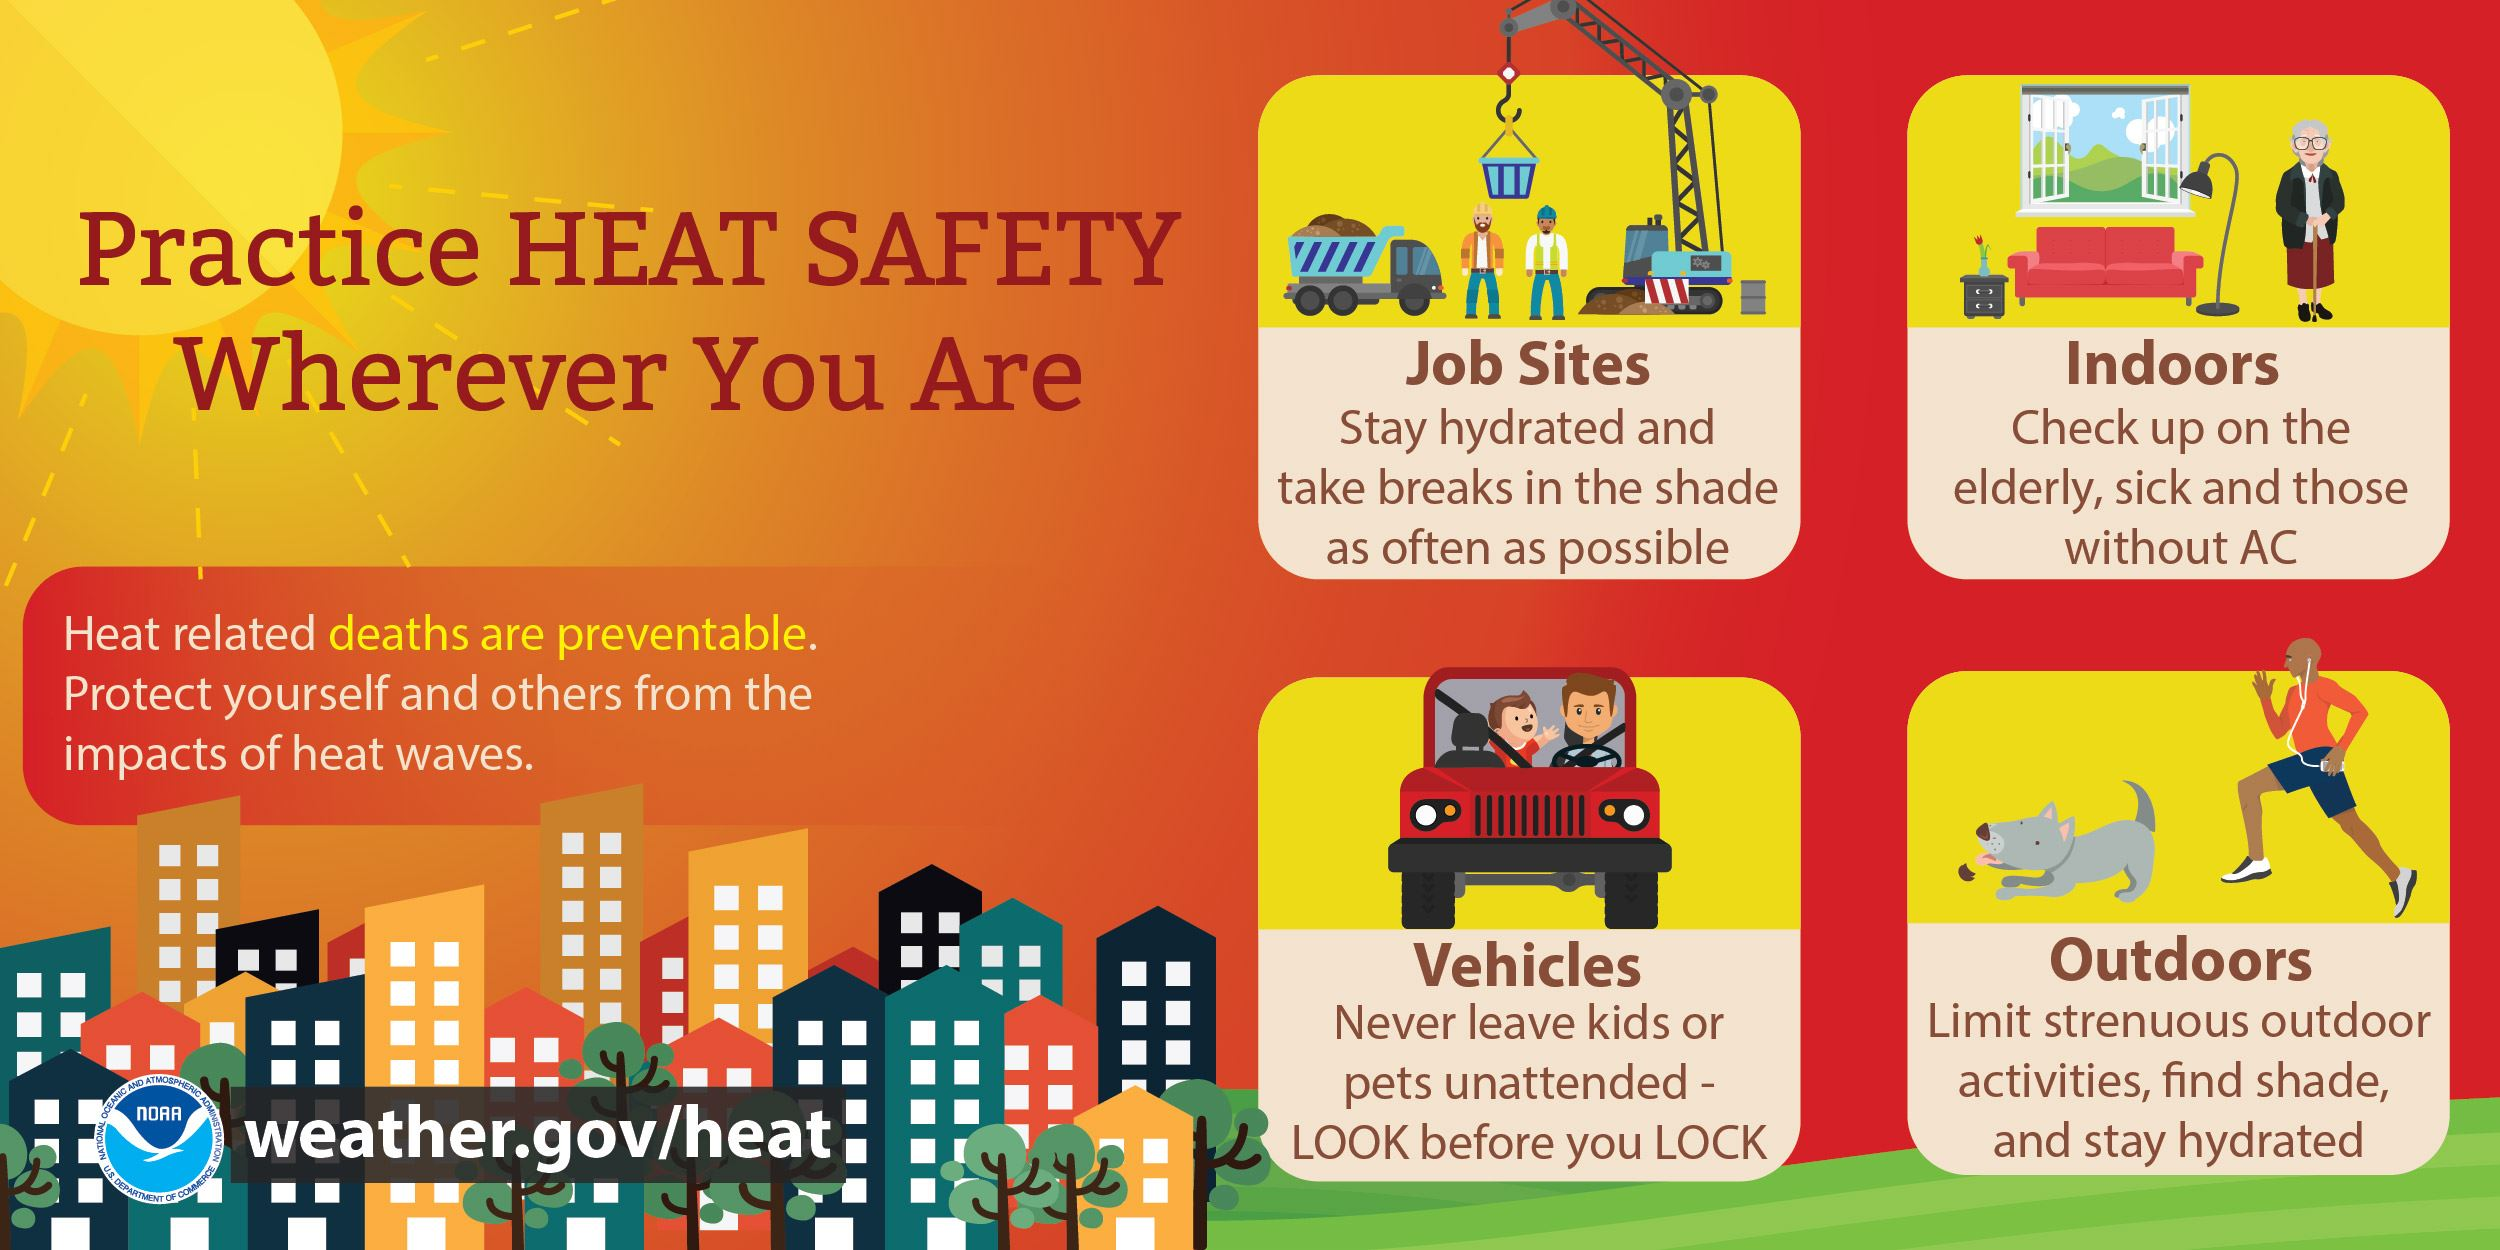 Image for practicing heat safety indoors, outdoors, in cars, & at job sites